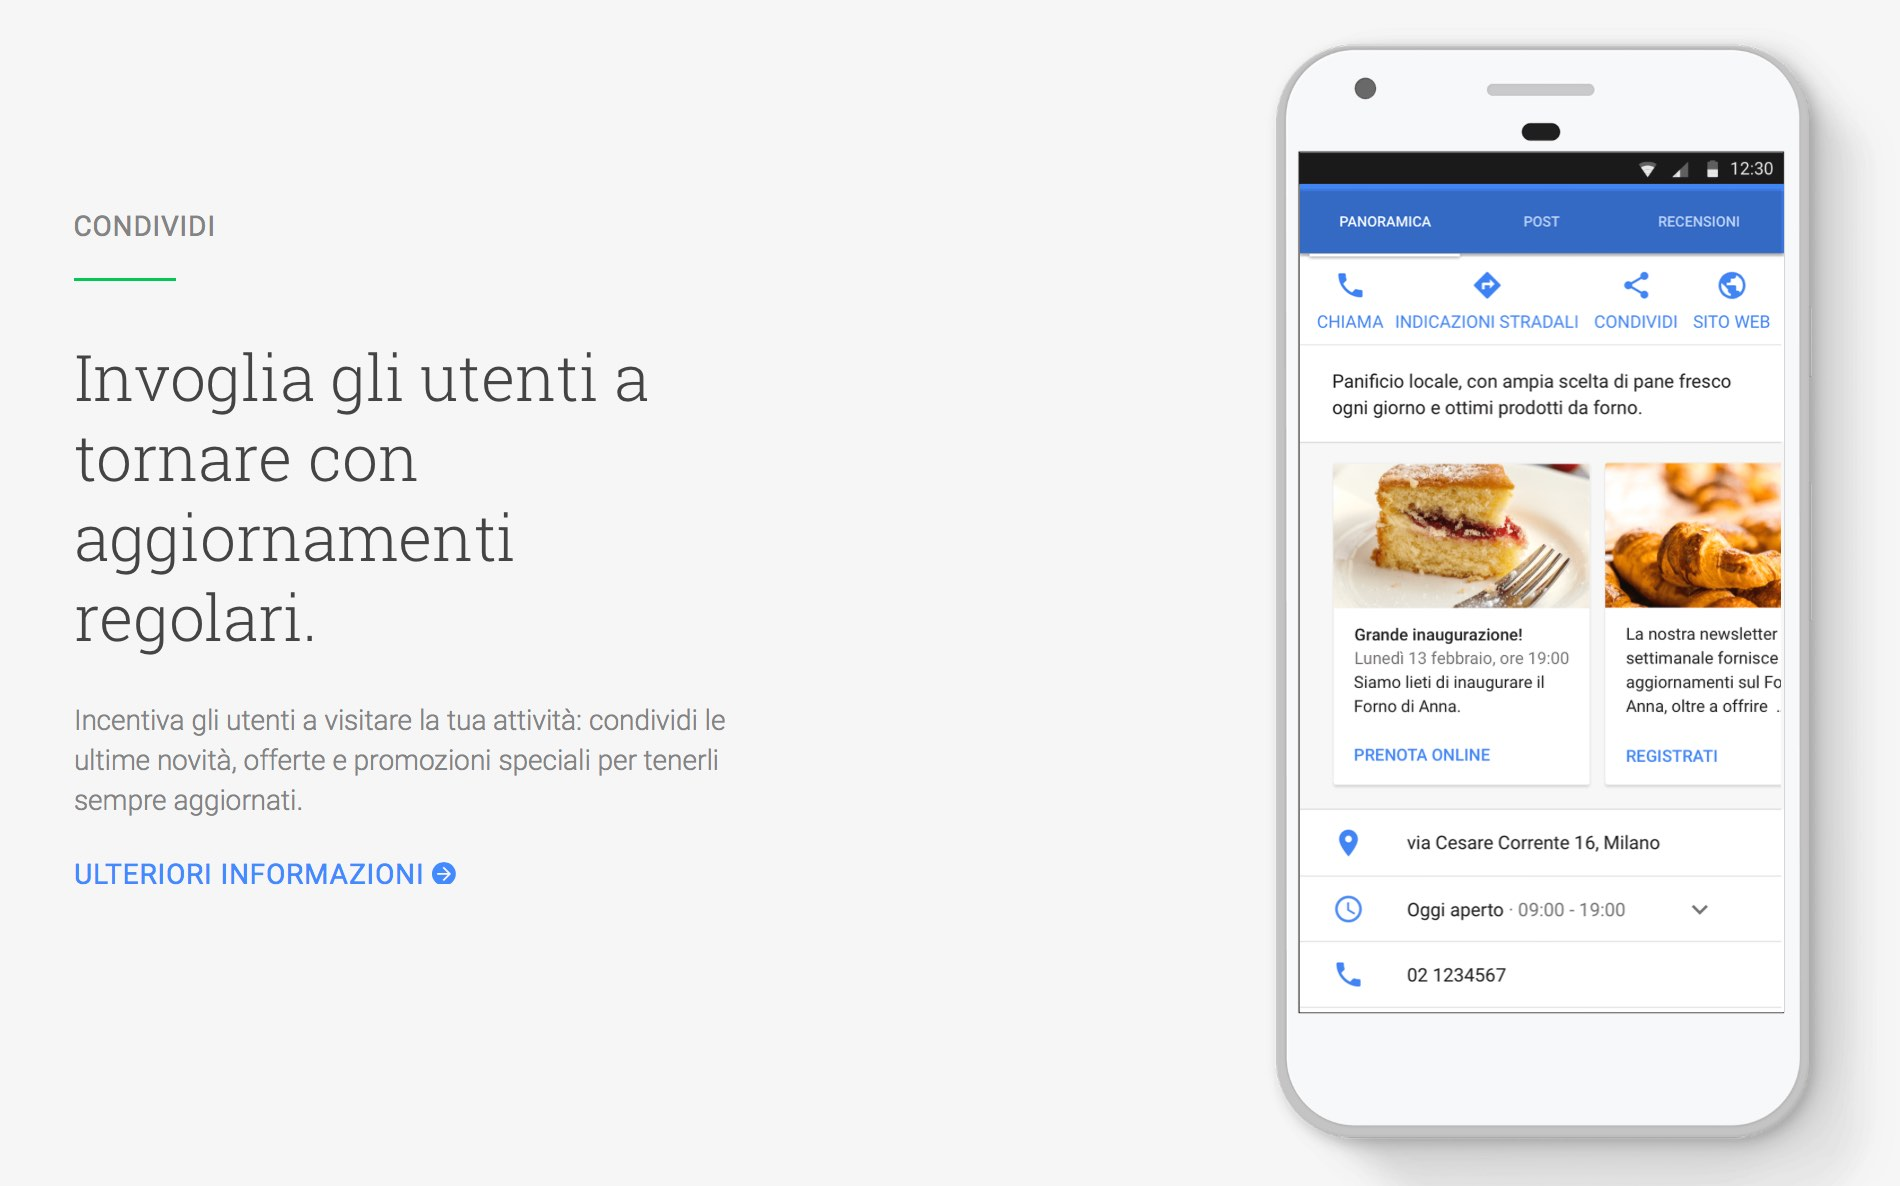 La funzione Post di Google My Business